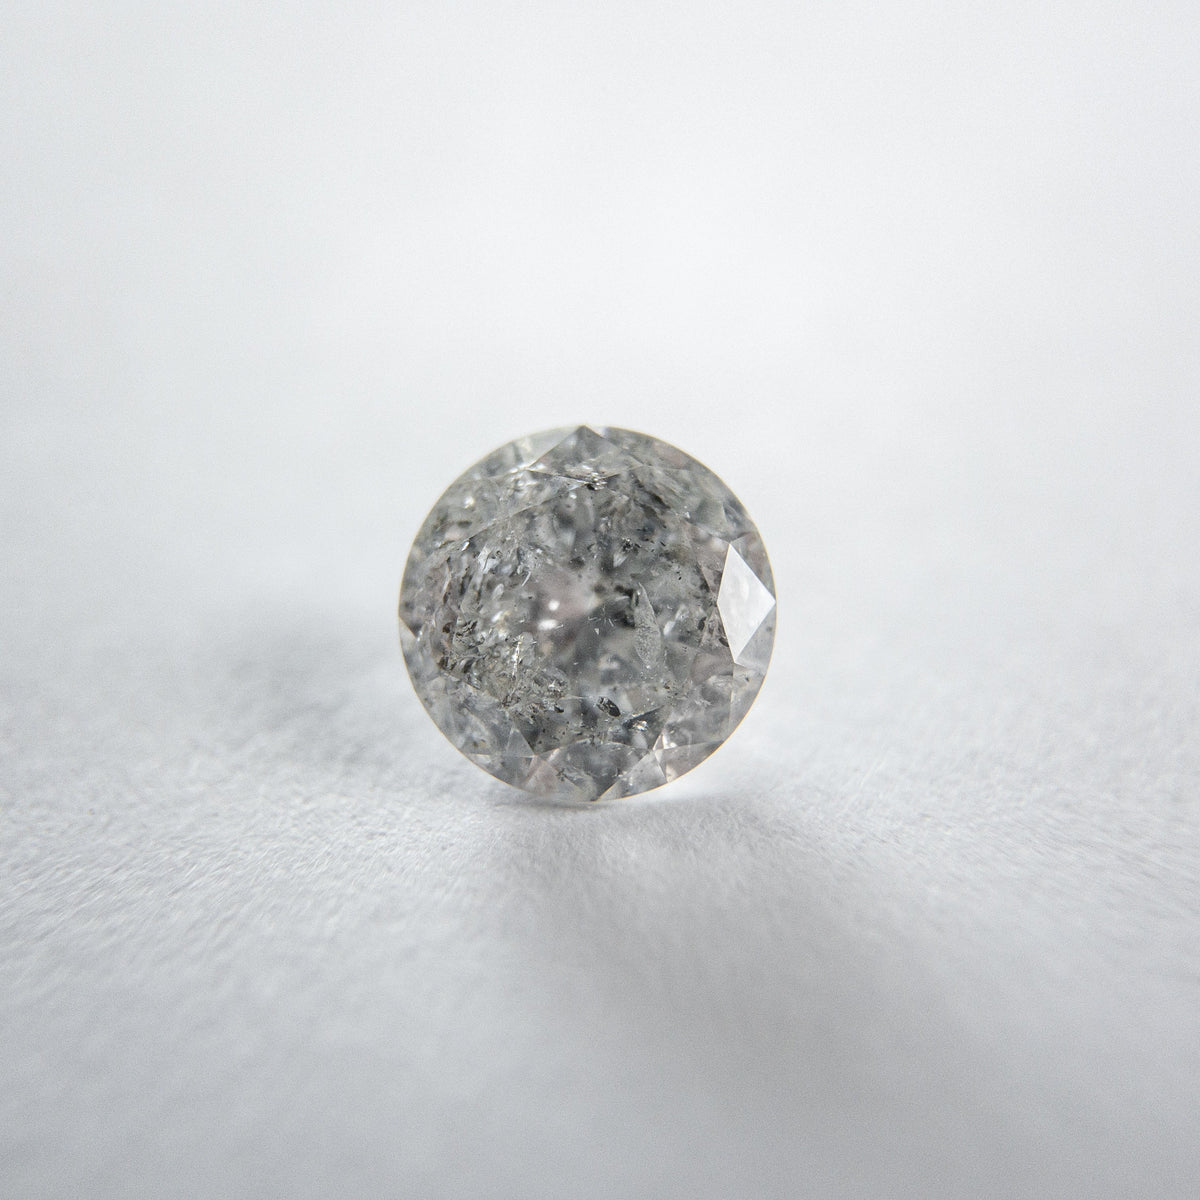 0.72ct 5.82x5.79x3.33mm Round Brilliant 18203-05